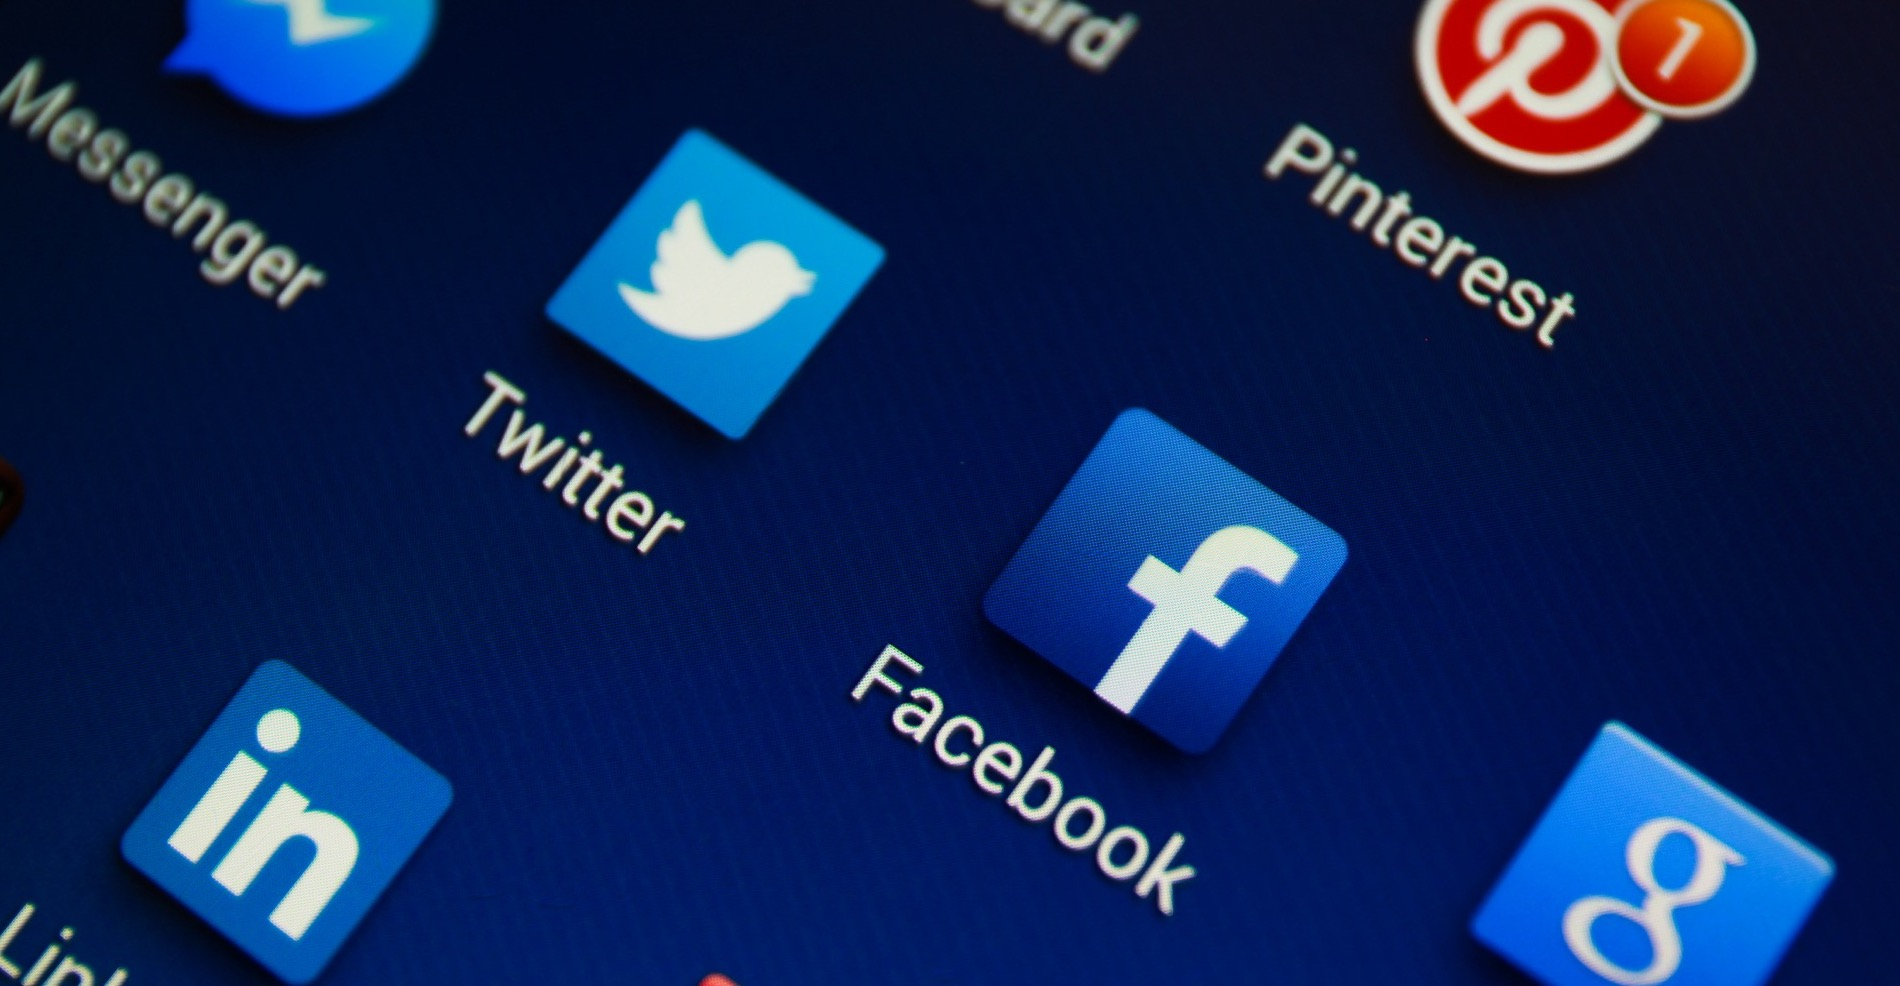 """Facebook blames major outage on """"configuration changes"""": Rivals gloat"""